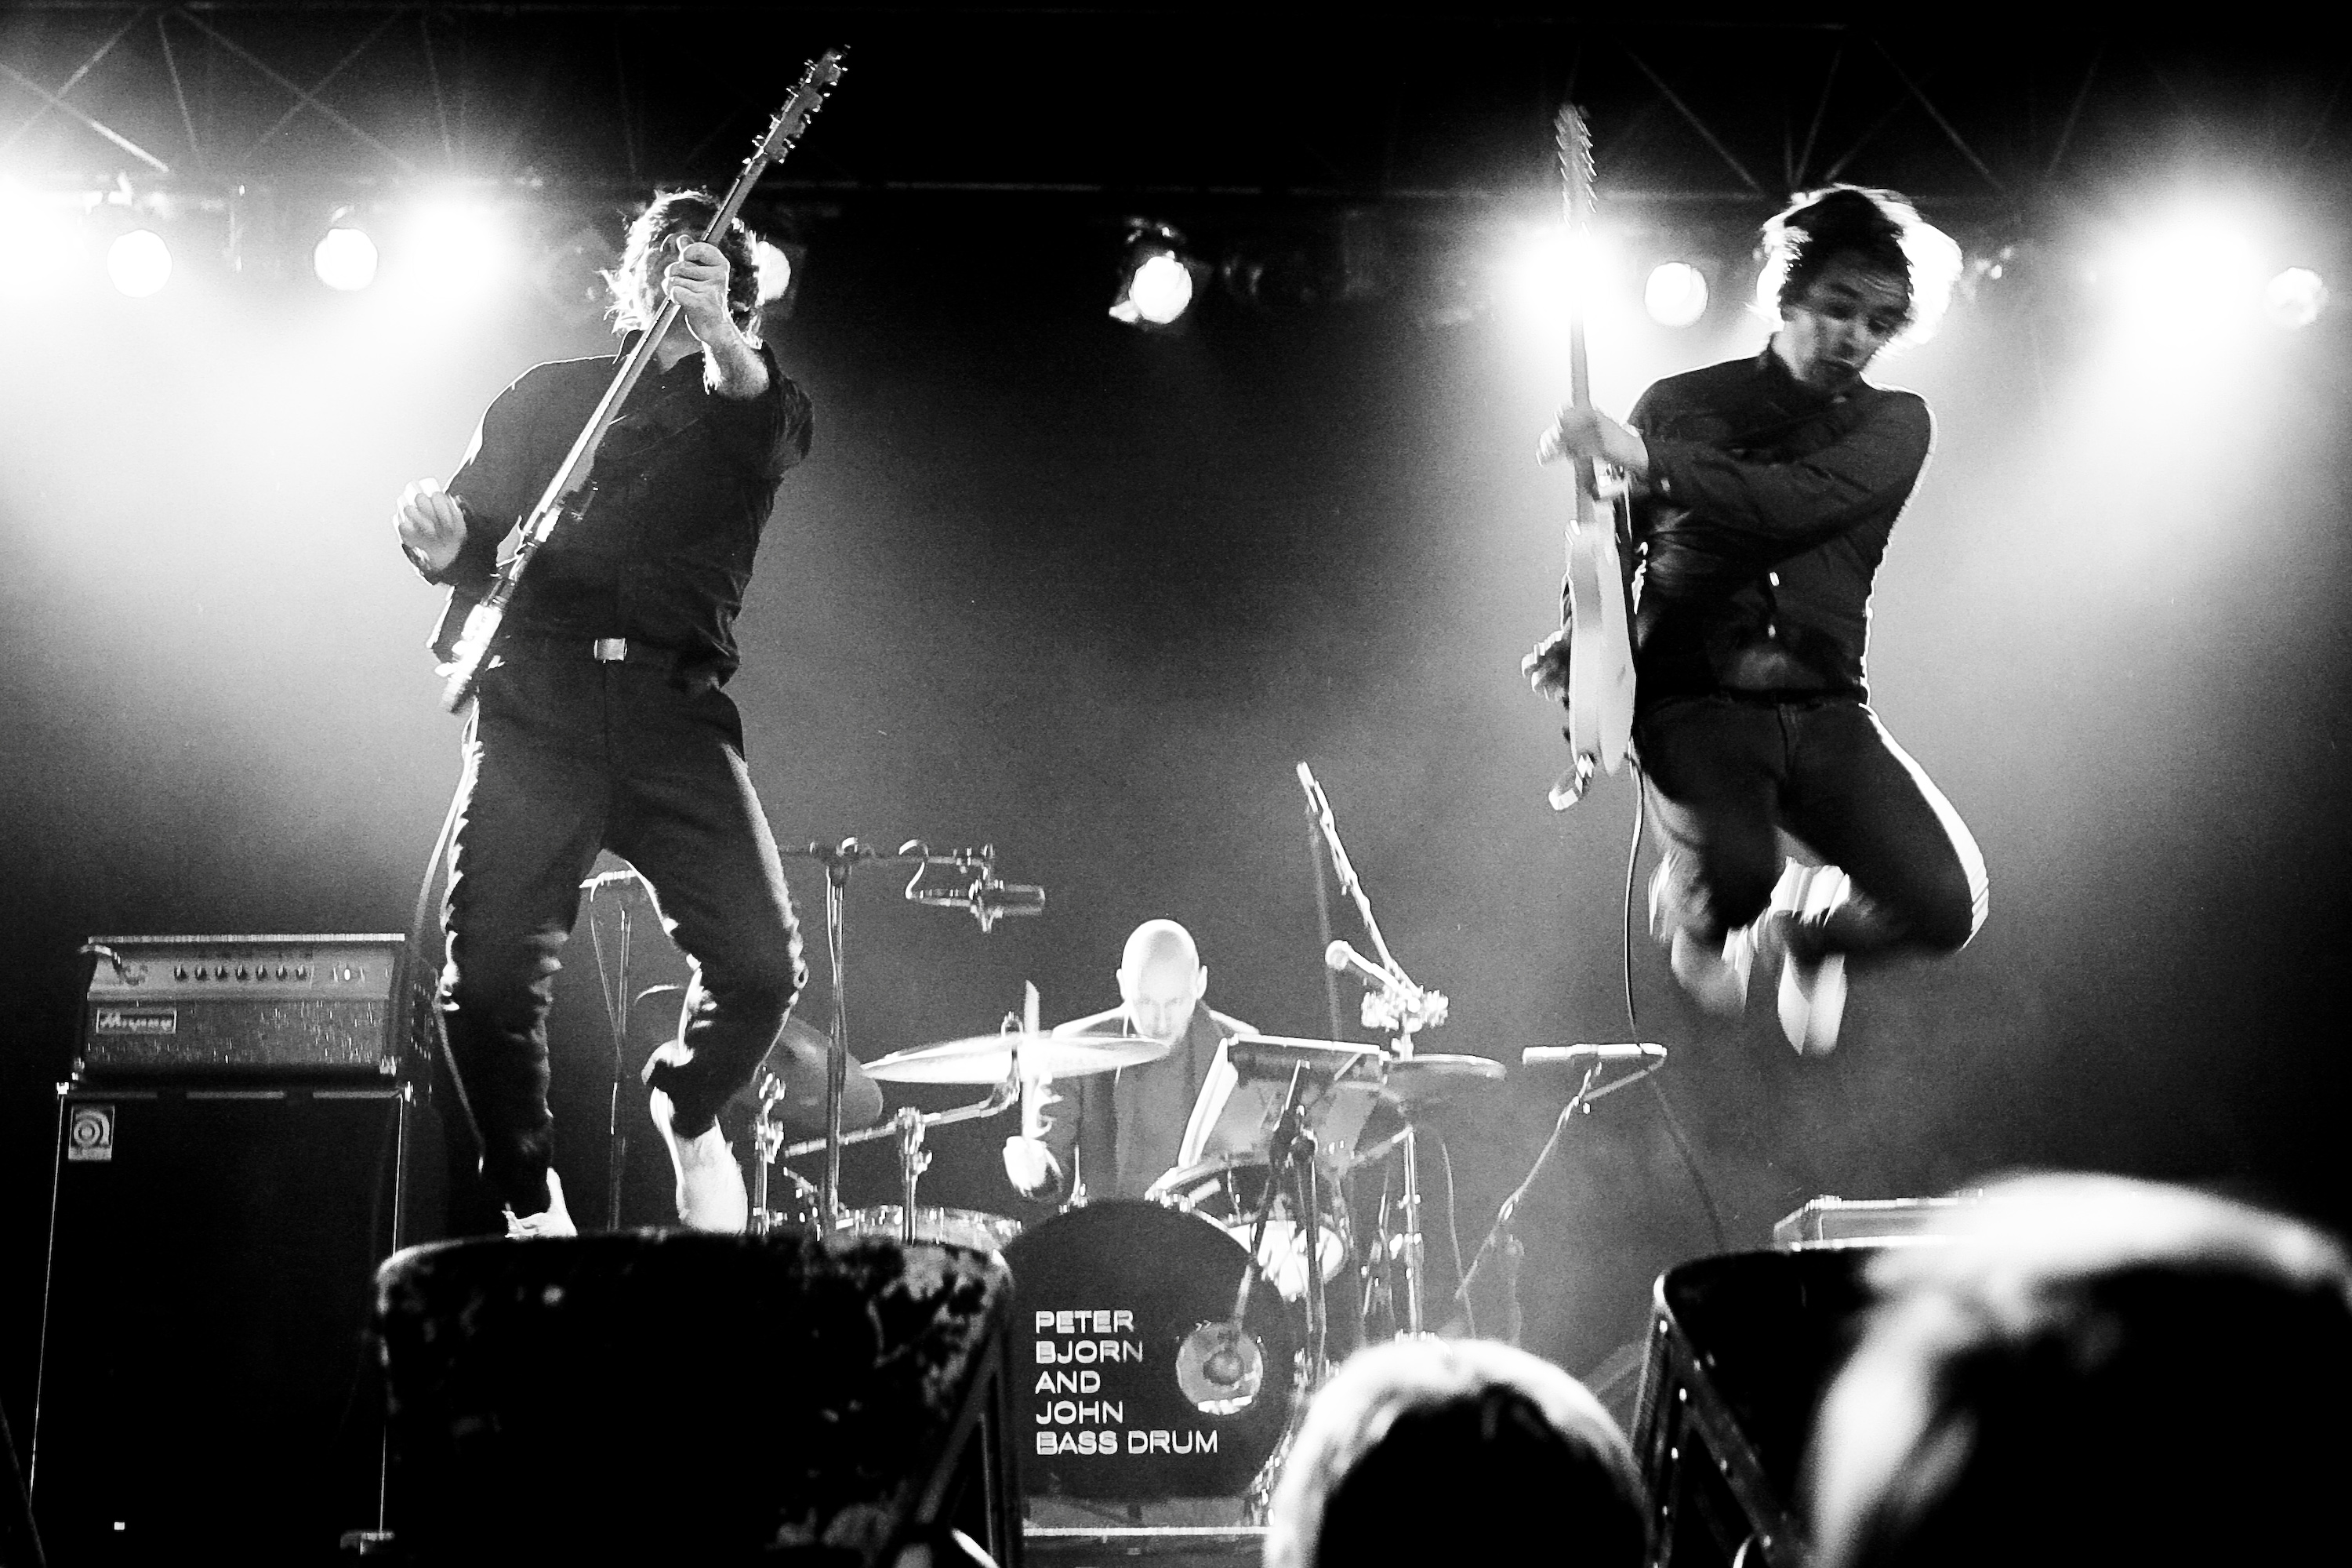 PETER BJORN & JOHN  – Fri., August 26, 2011 – The Majestic Theatre